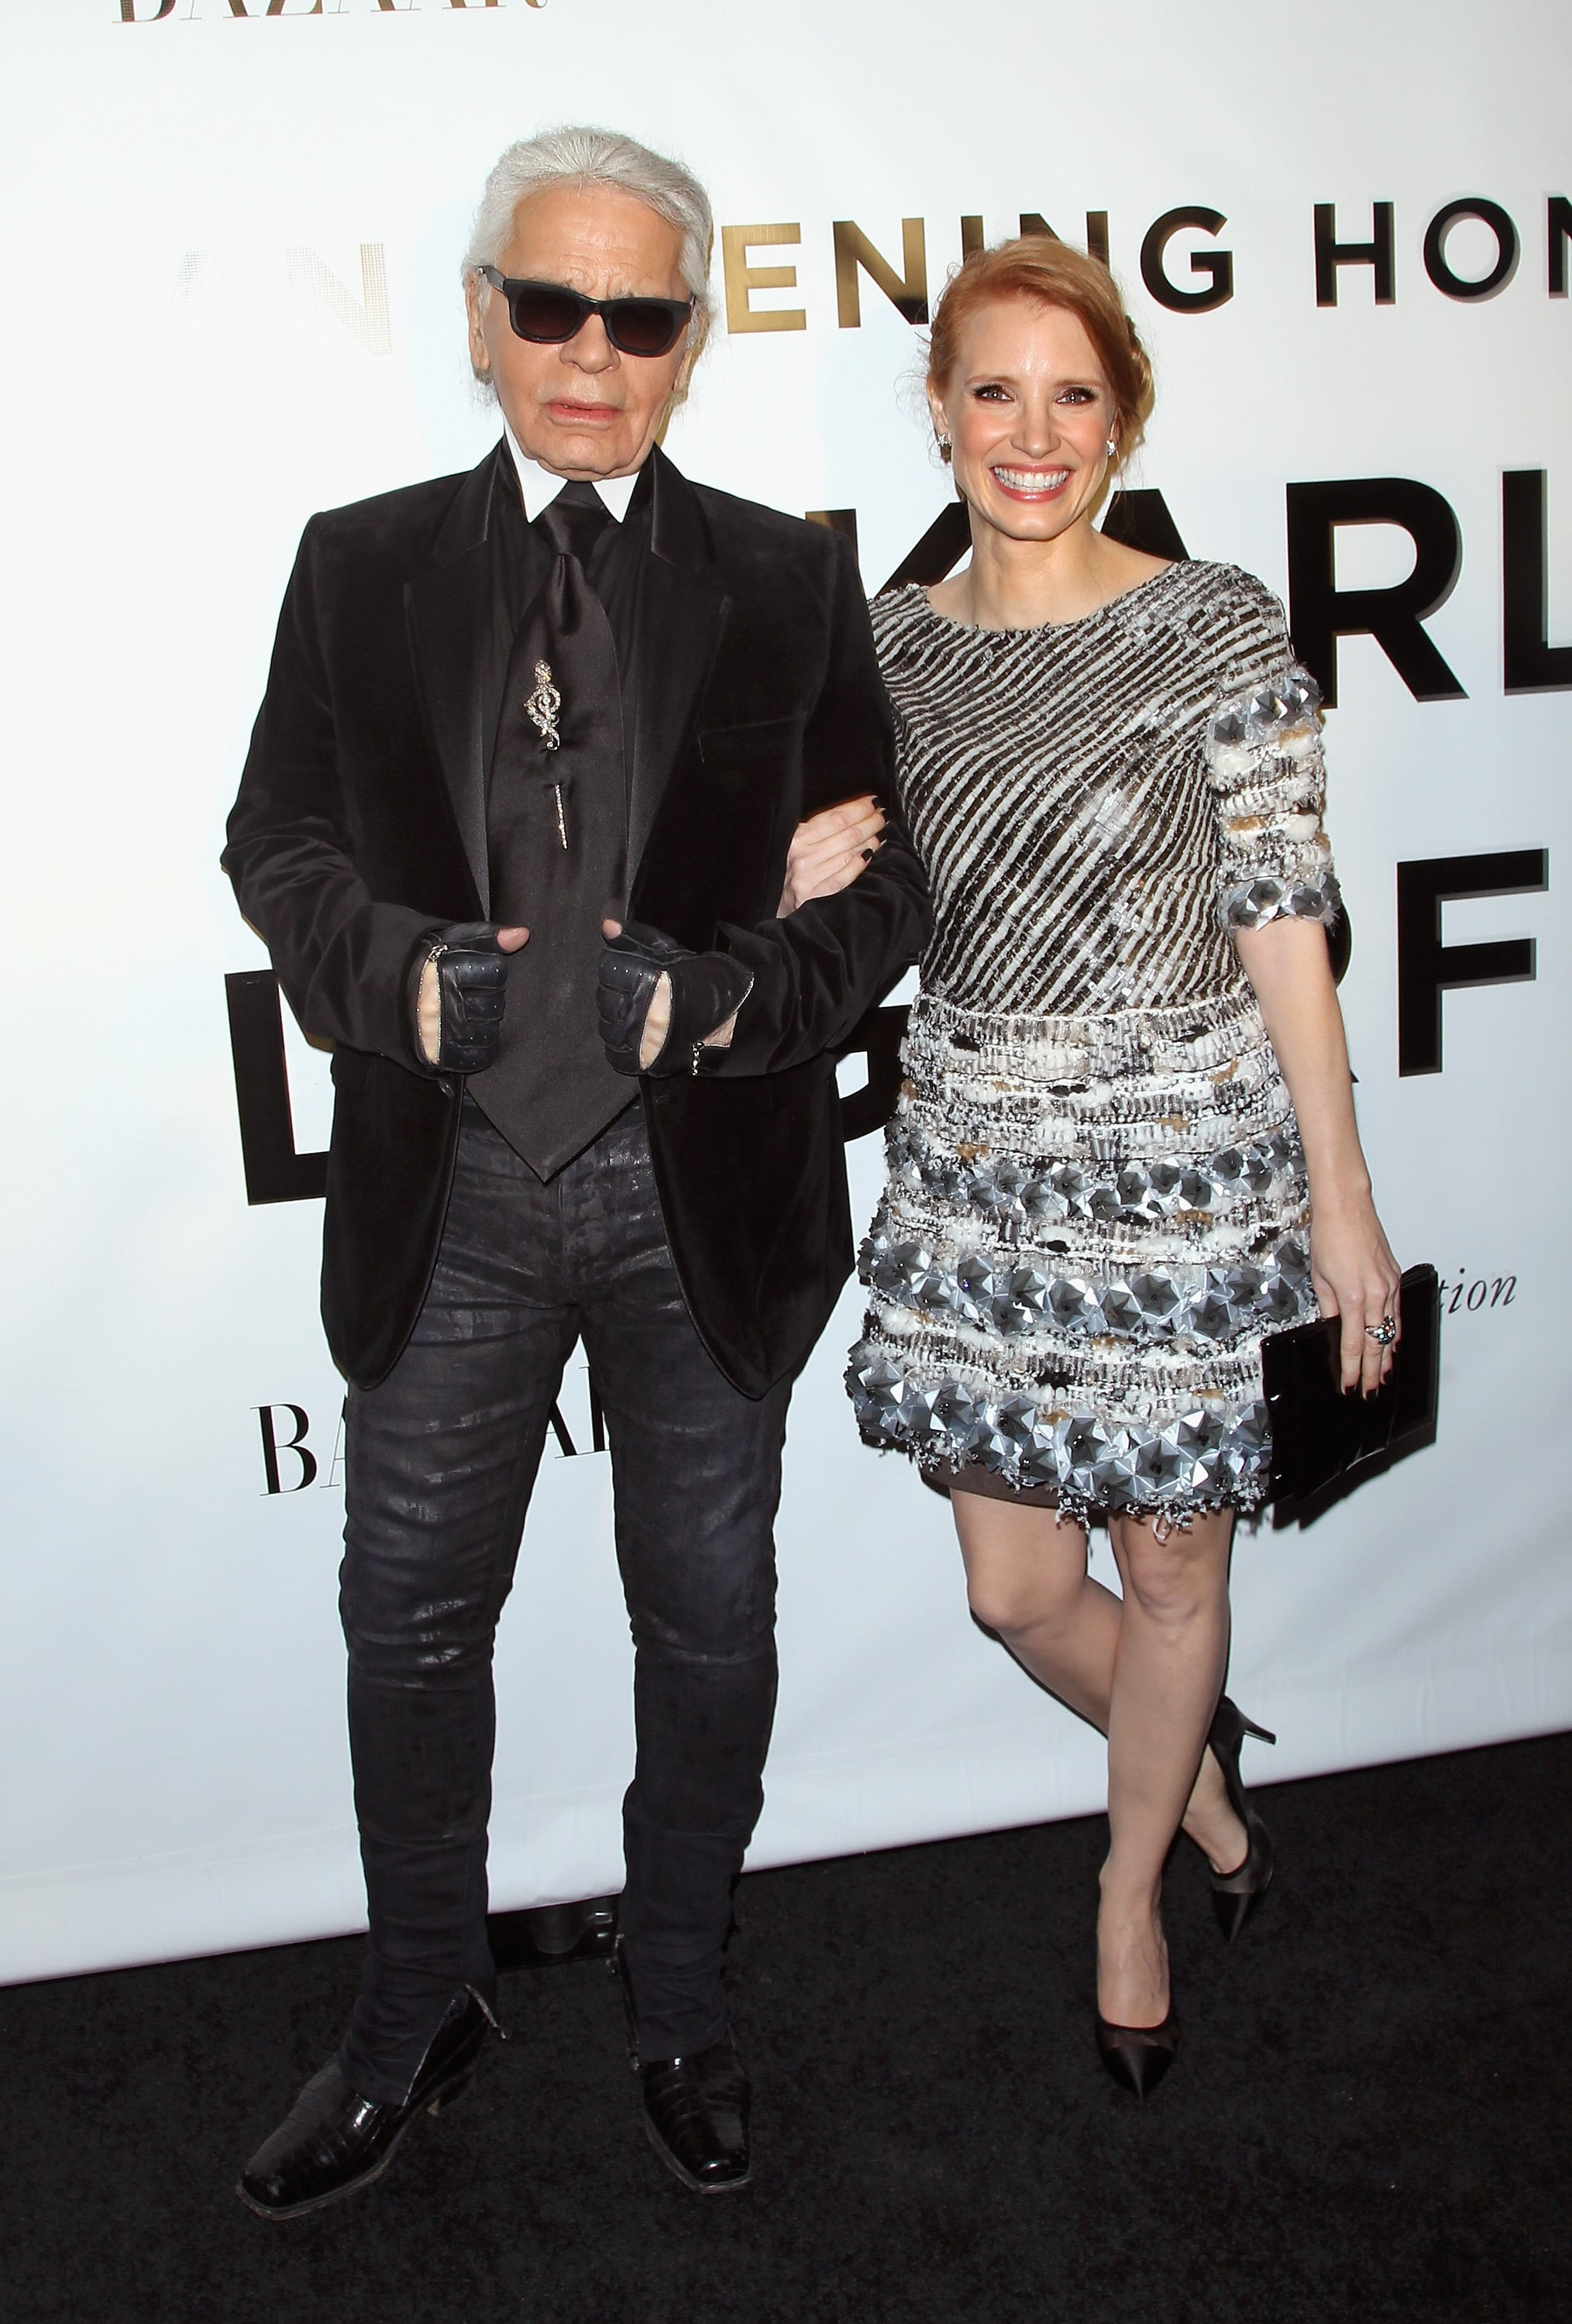 Karl Lagerfeld had a stunning date in Jessica Chastain, who wore his Haute Couture designs to an evening in his honor.